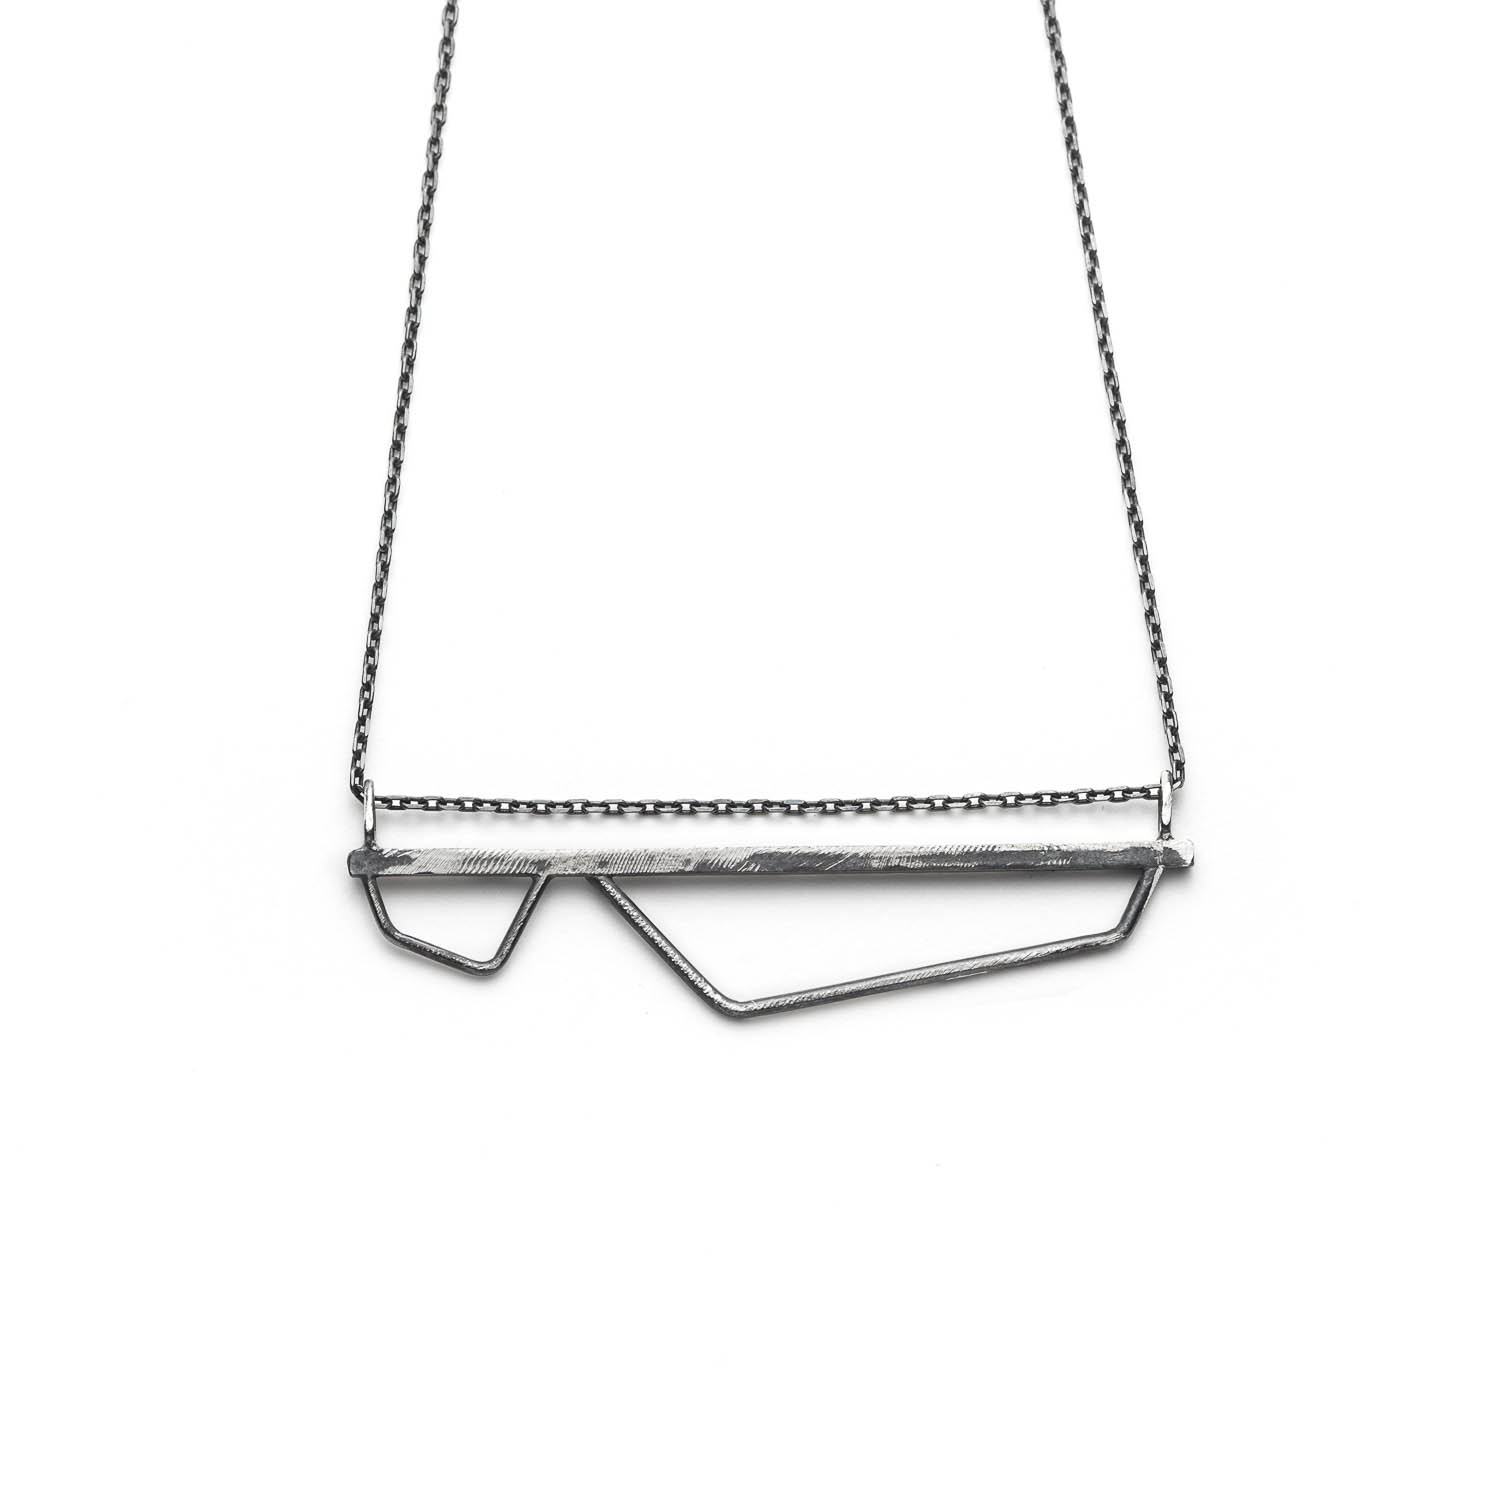 minimalist and geometric jewelry. sterling silver V bar necklace from Angle line